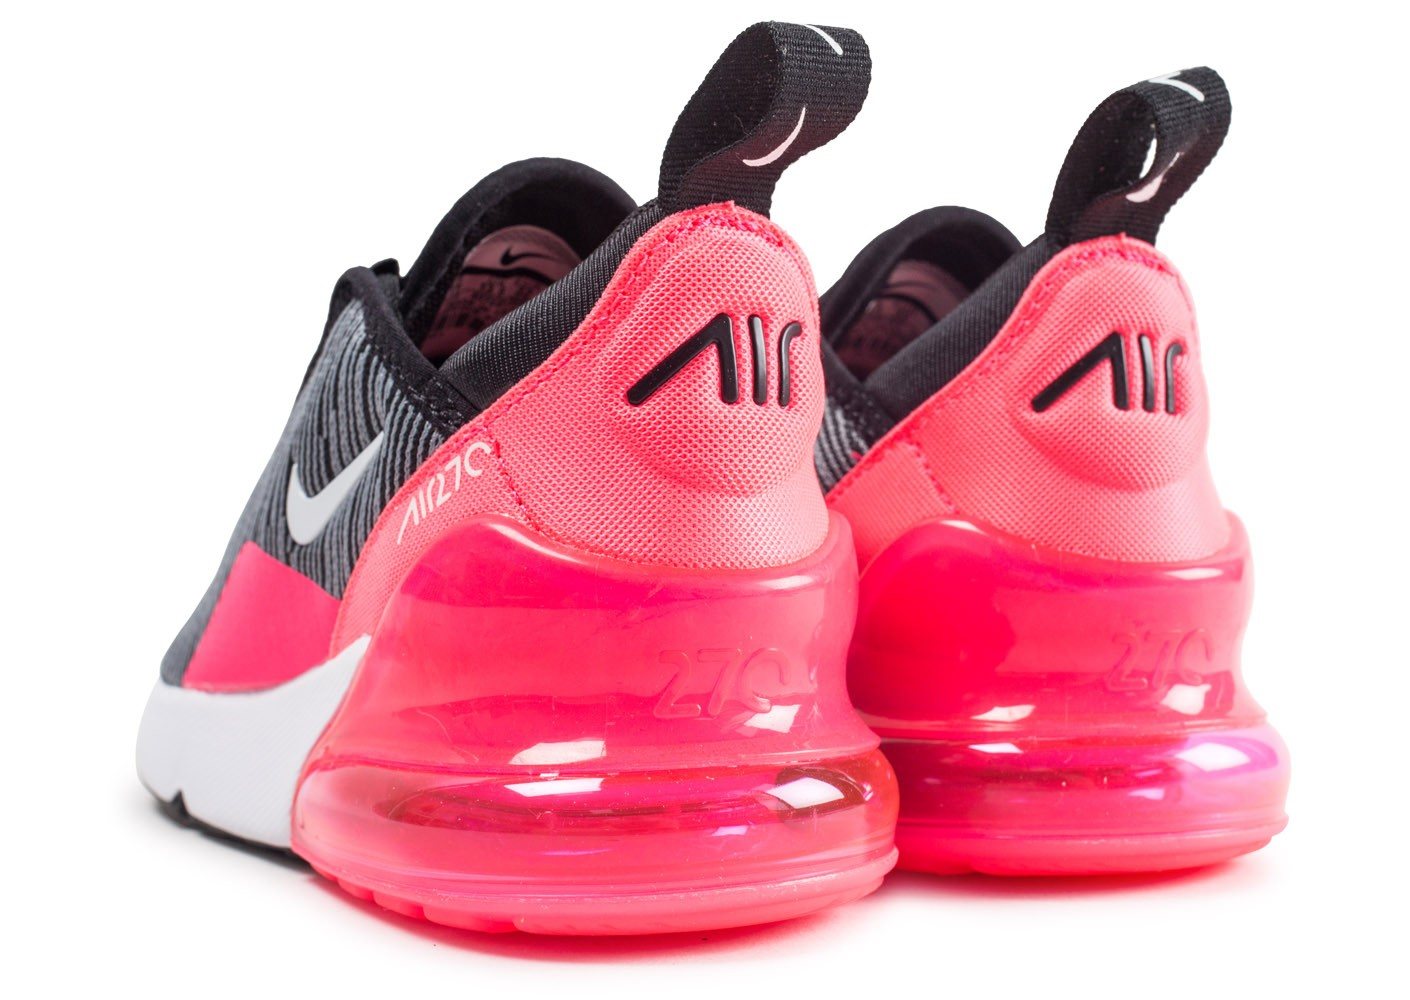 official shop utterly stylish superior quality Nike Air Max 270 noire et rose enfant - Chaussures Enfant ...